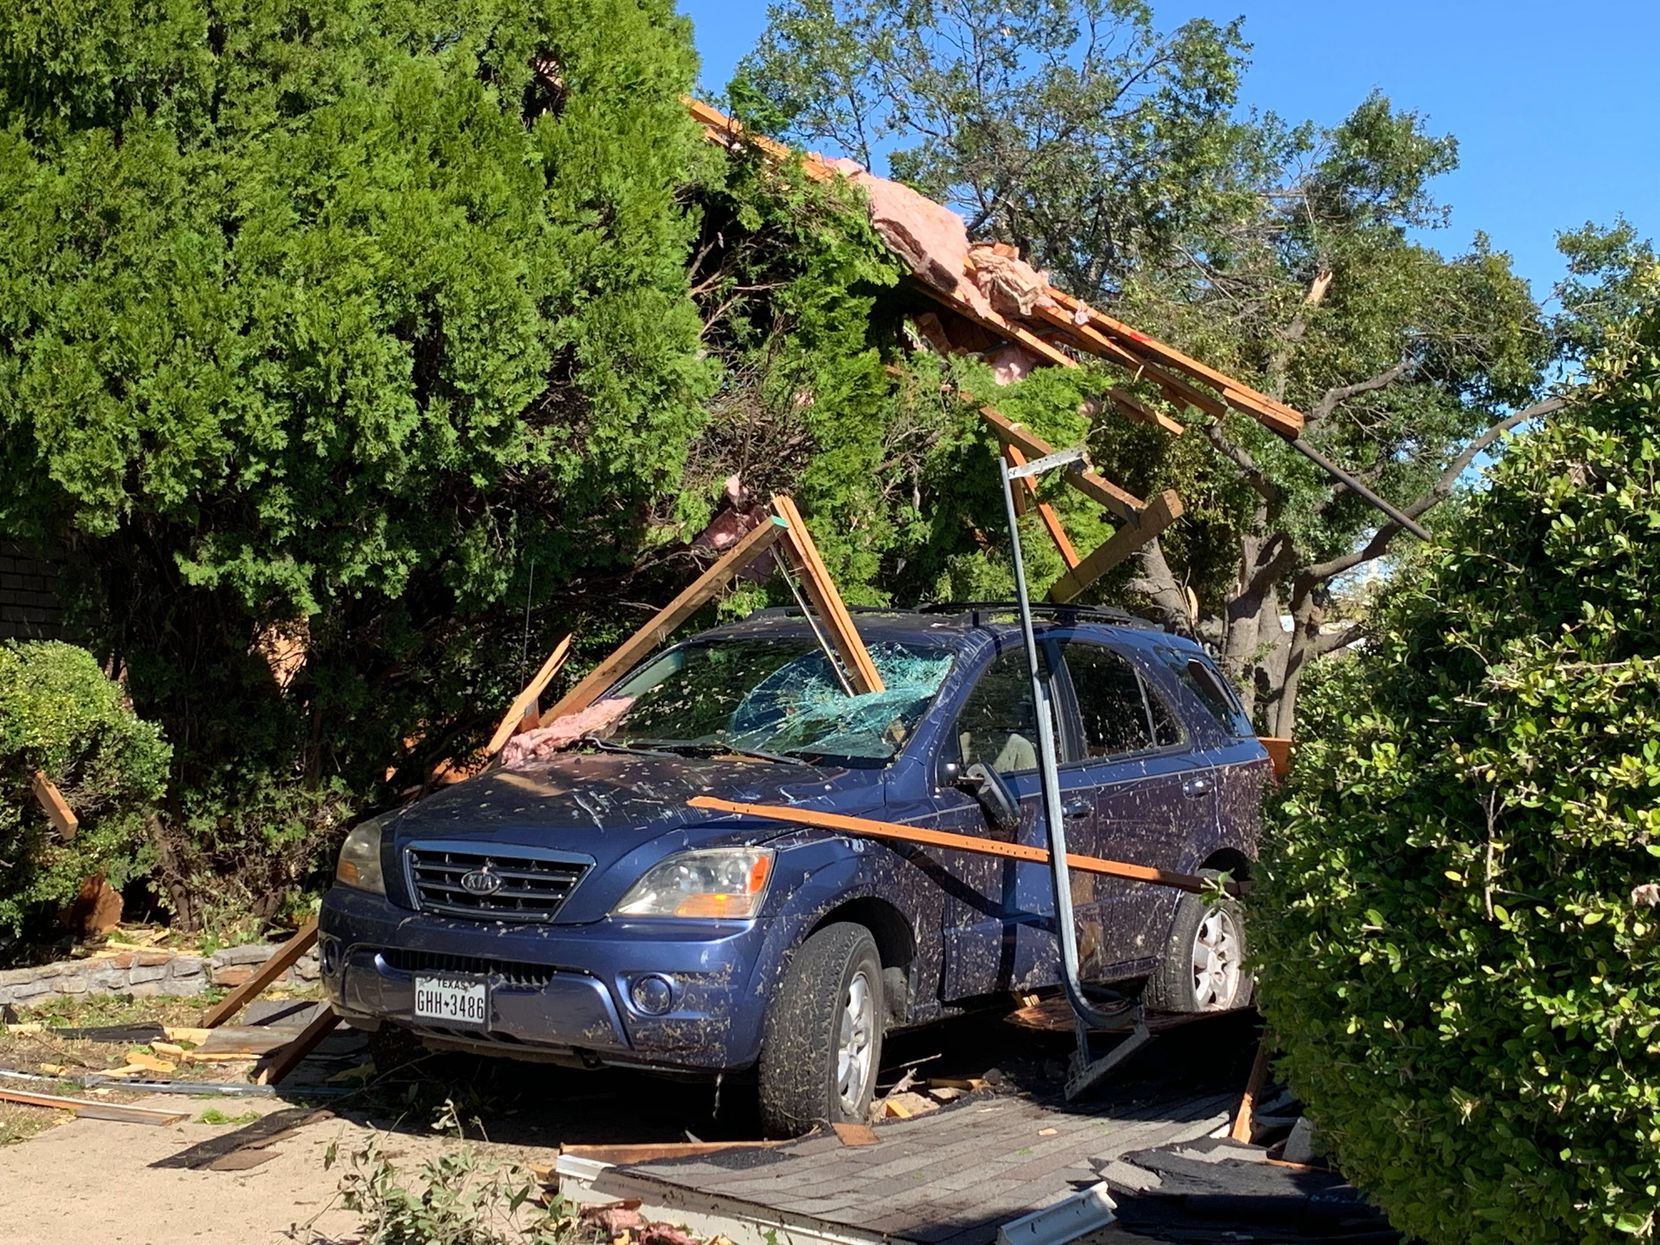 Debris from a nearby house dangles from a tree over a blue Kia SUV in the 1100 block of South Bowser Road in Richardson on Monday, October 21, 2019. Some of the wood crashed through the windshield. The neighborhood suffered extensive damage in Sunday night's tornado.